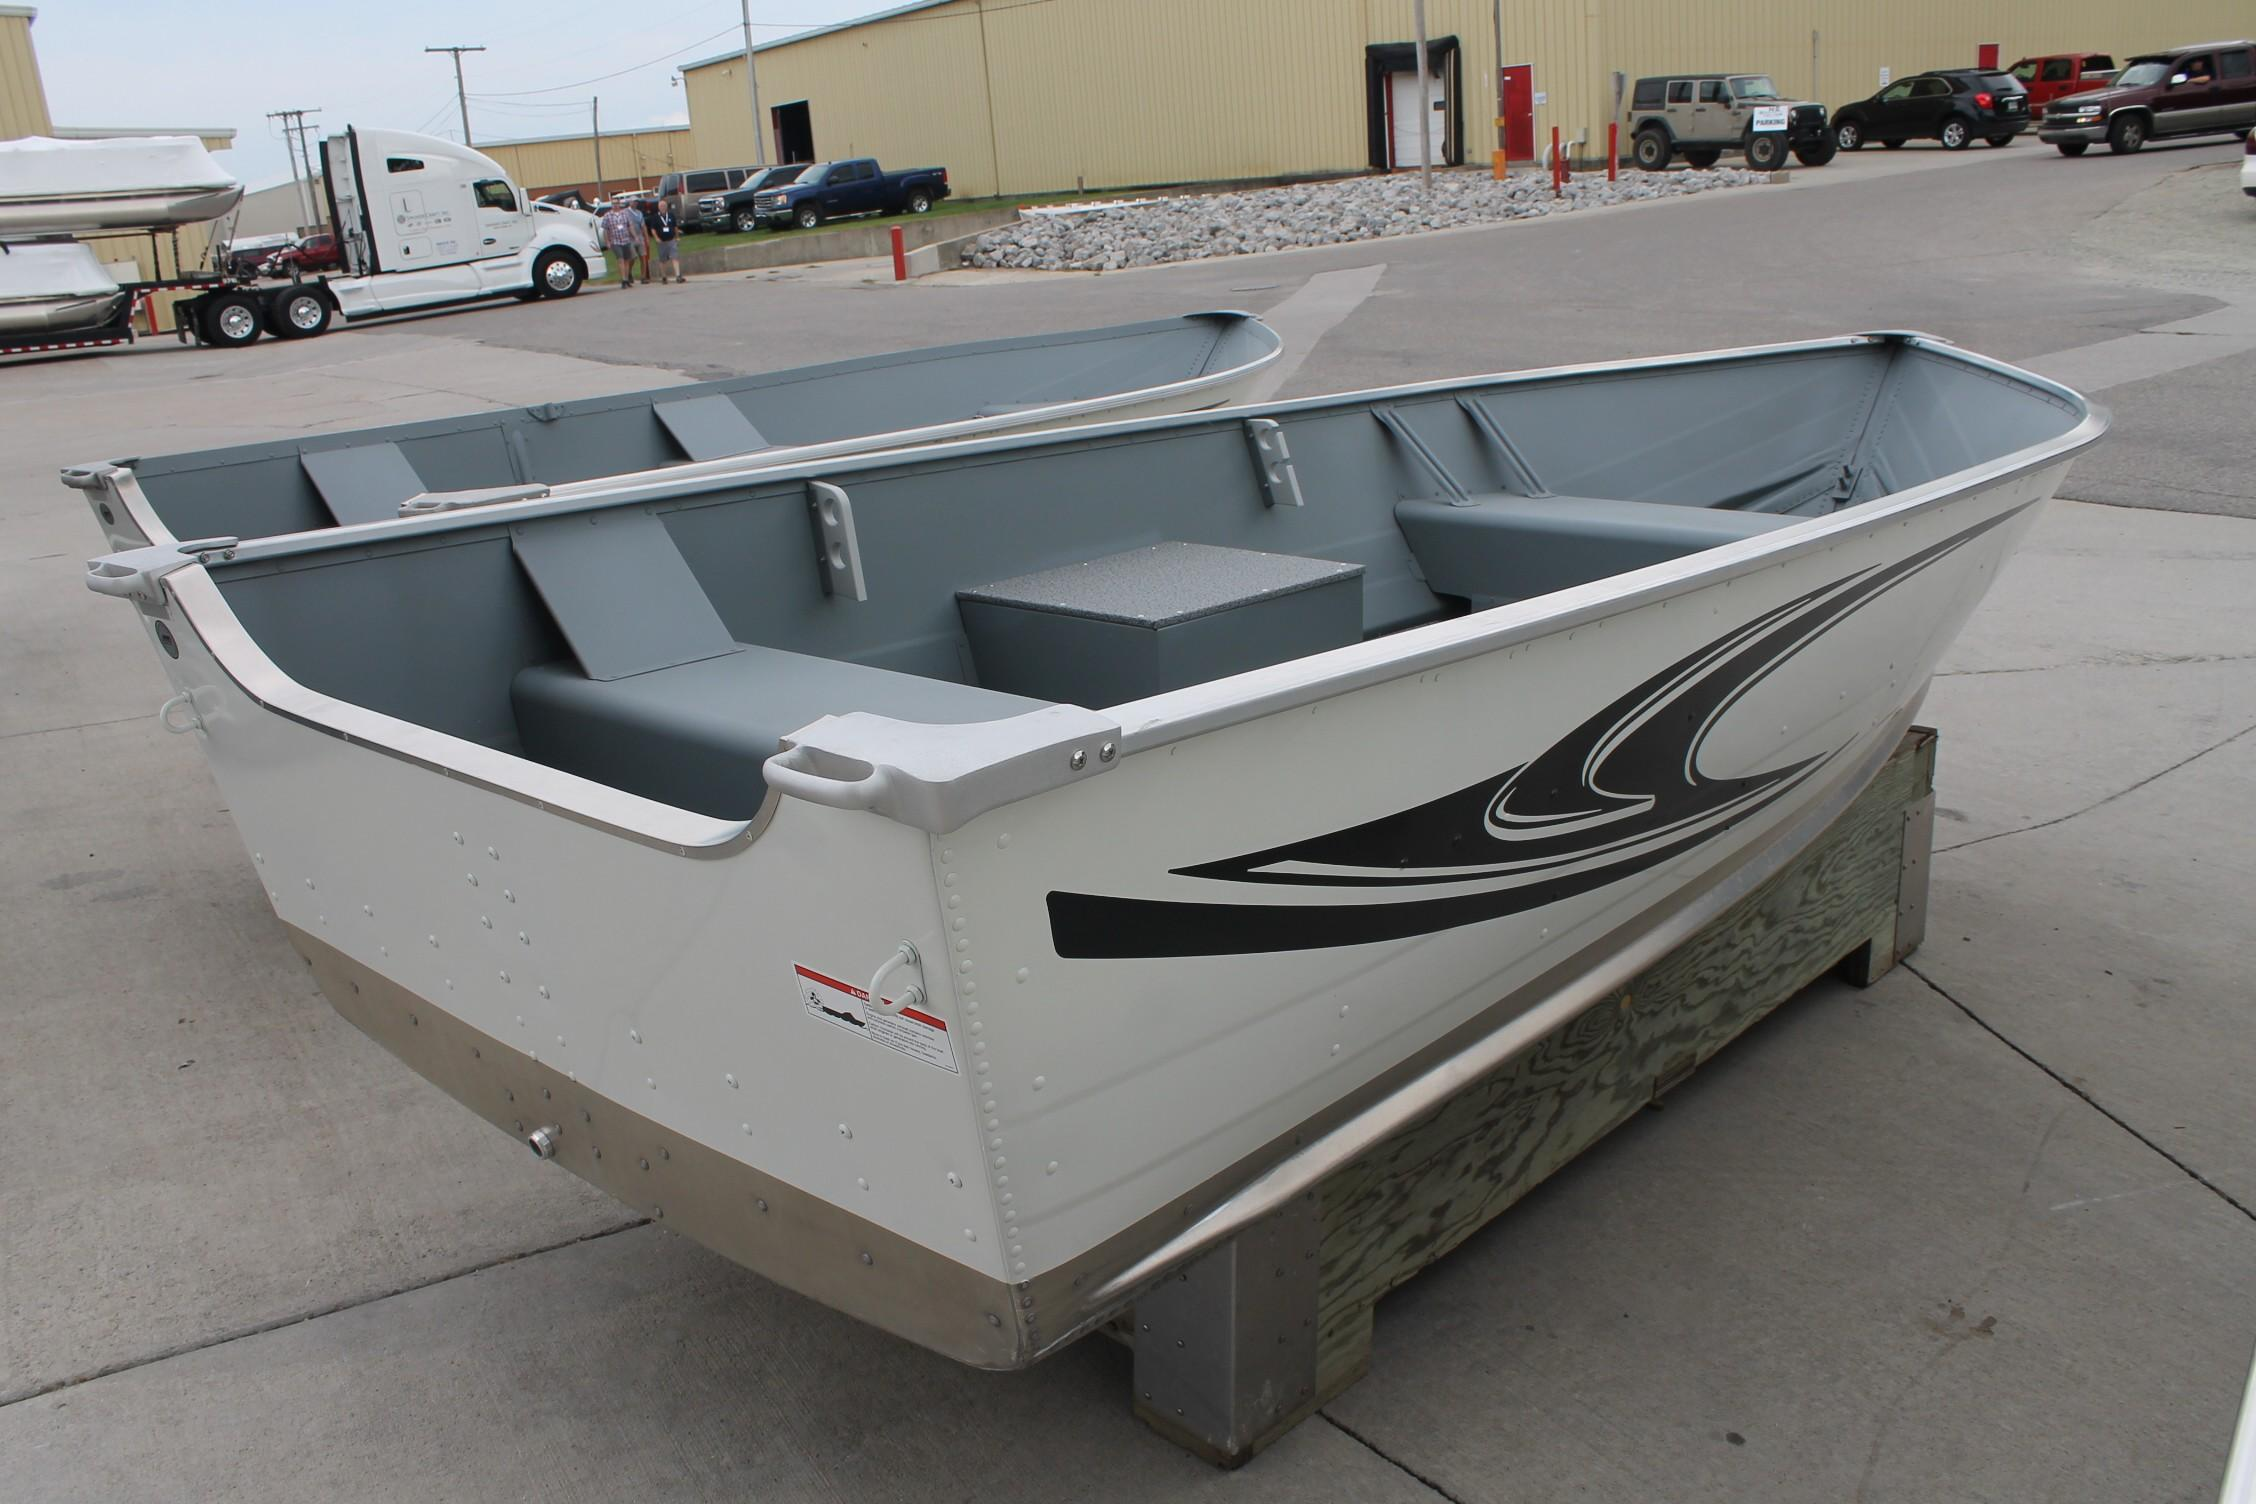 2019 Smoker Craft boat for sale, model of the boat is 13 Alaskan DLX & Image # 10 of 18